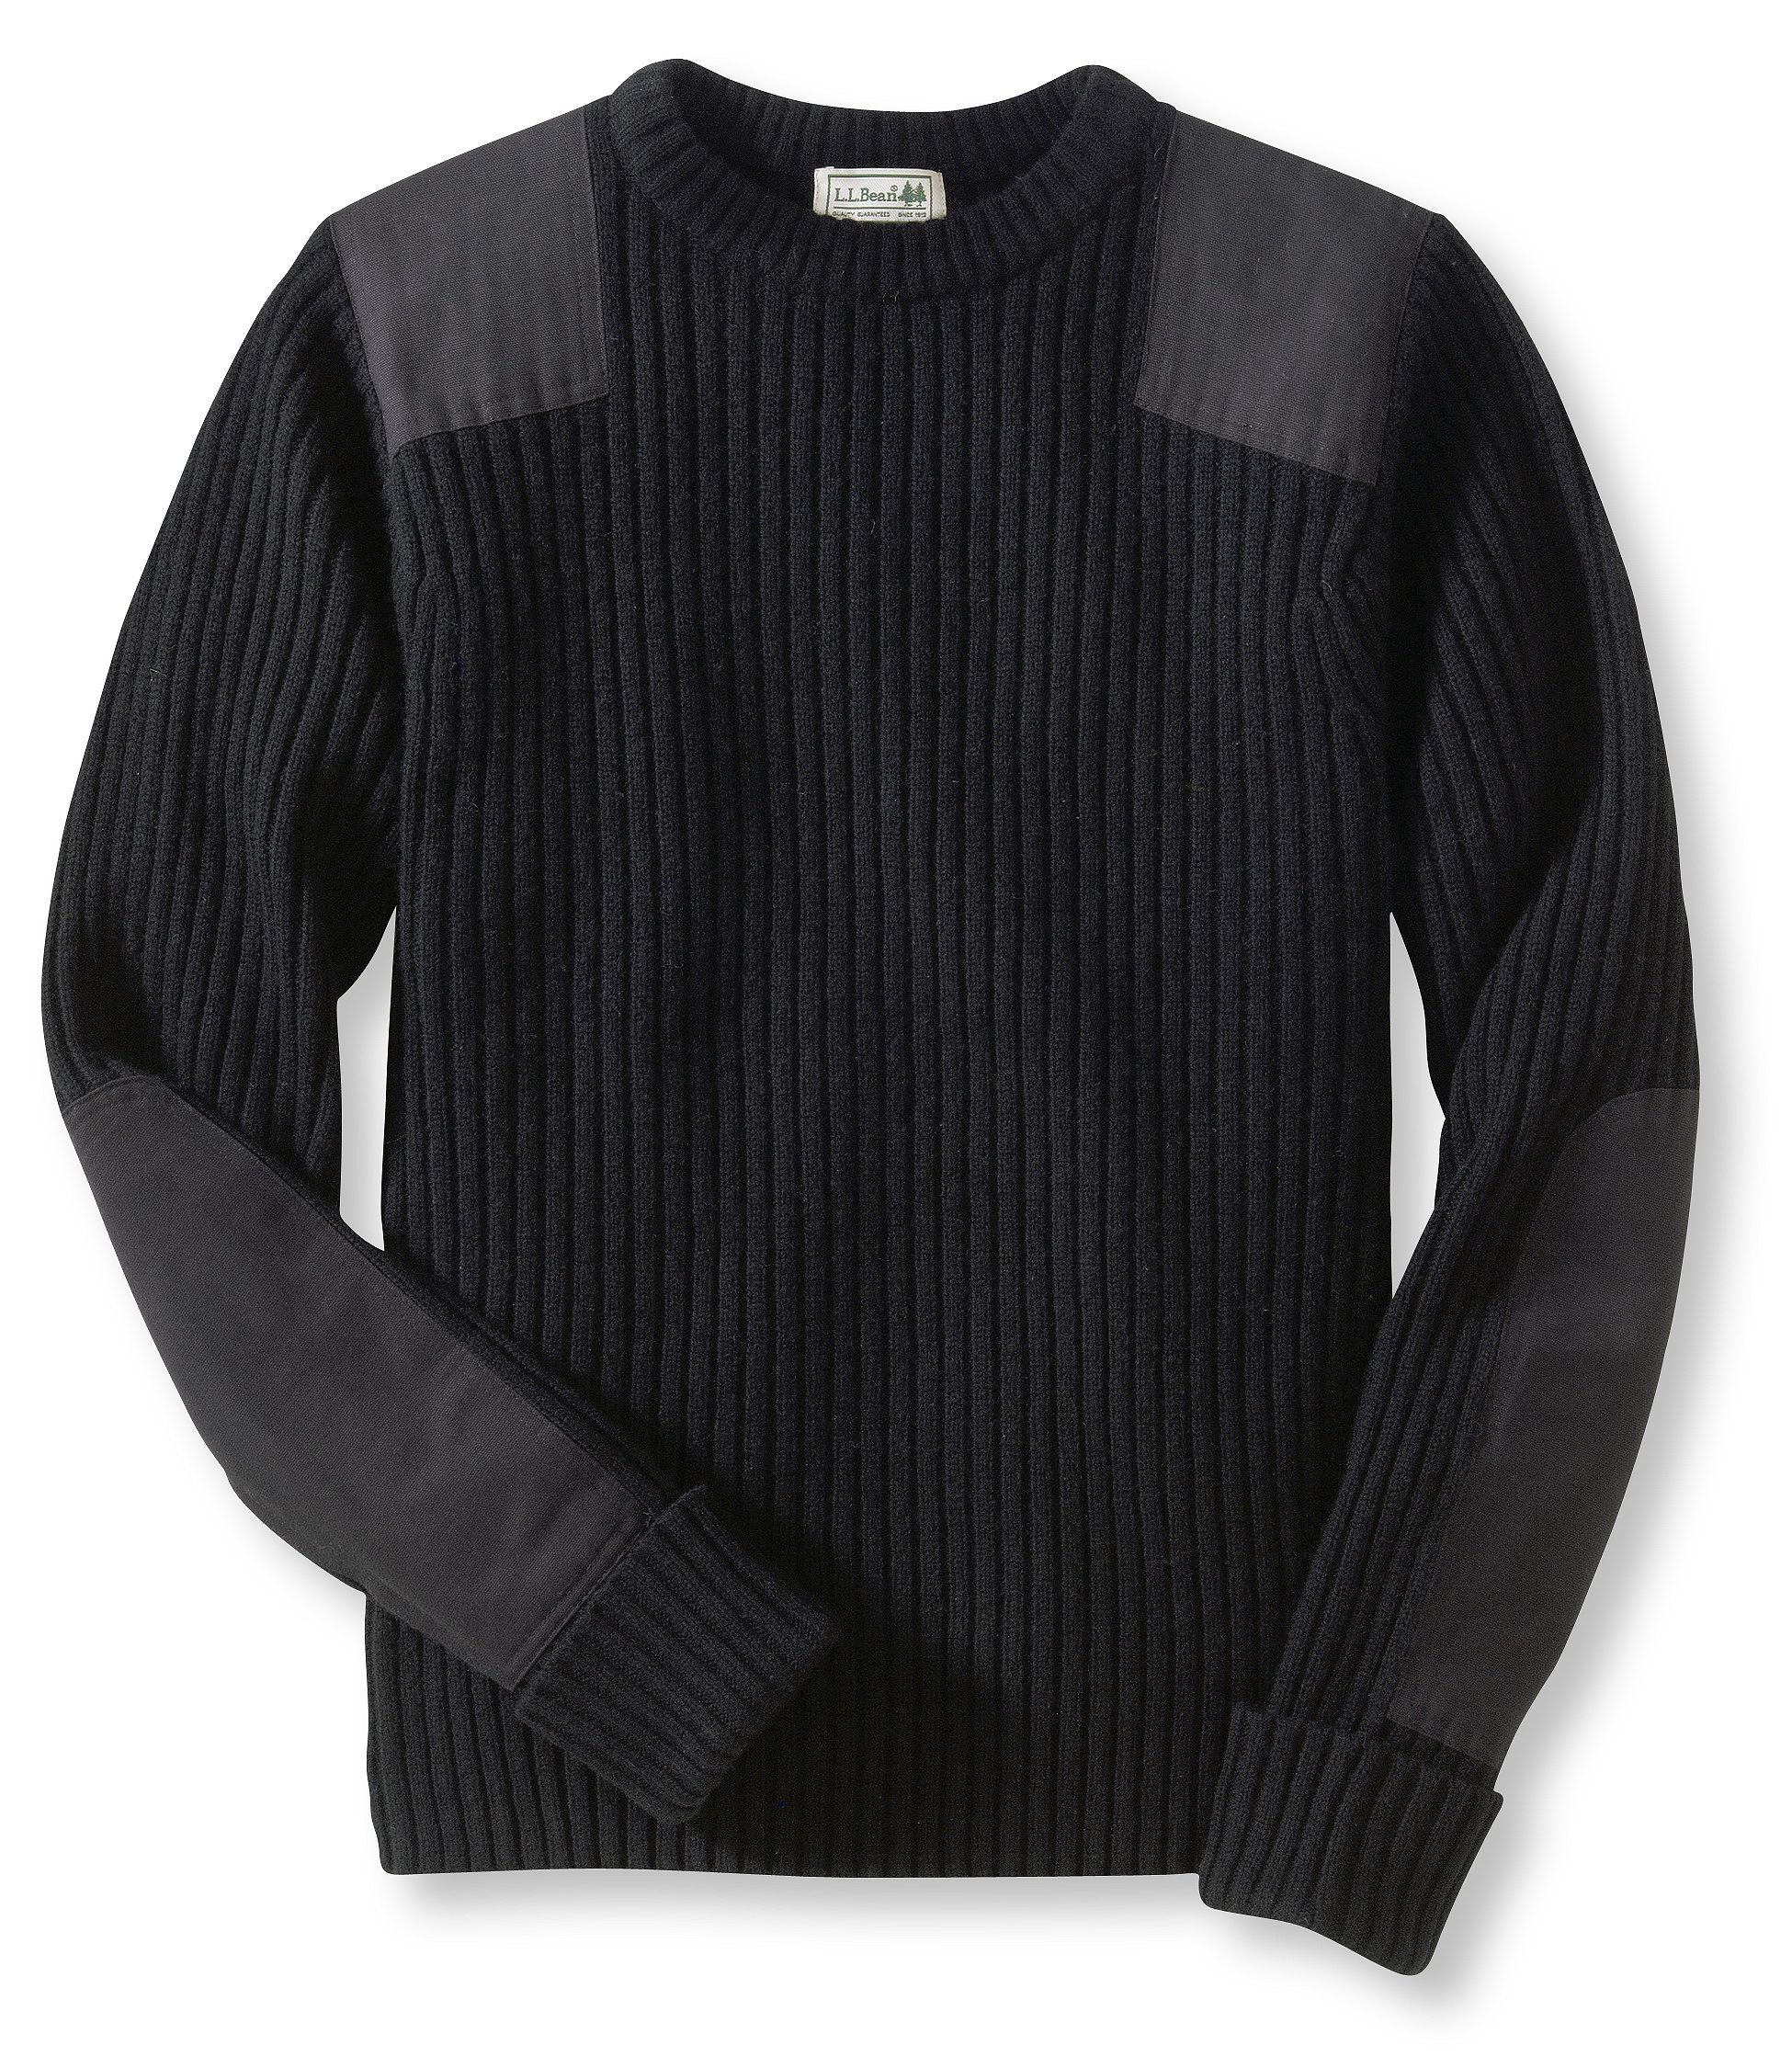 Mens Knitted Cardigan Thick Sweater Half Front Zip Turn Down Collar Fleece Lined Long Sleeve Jumper